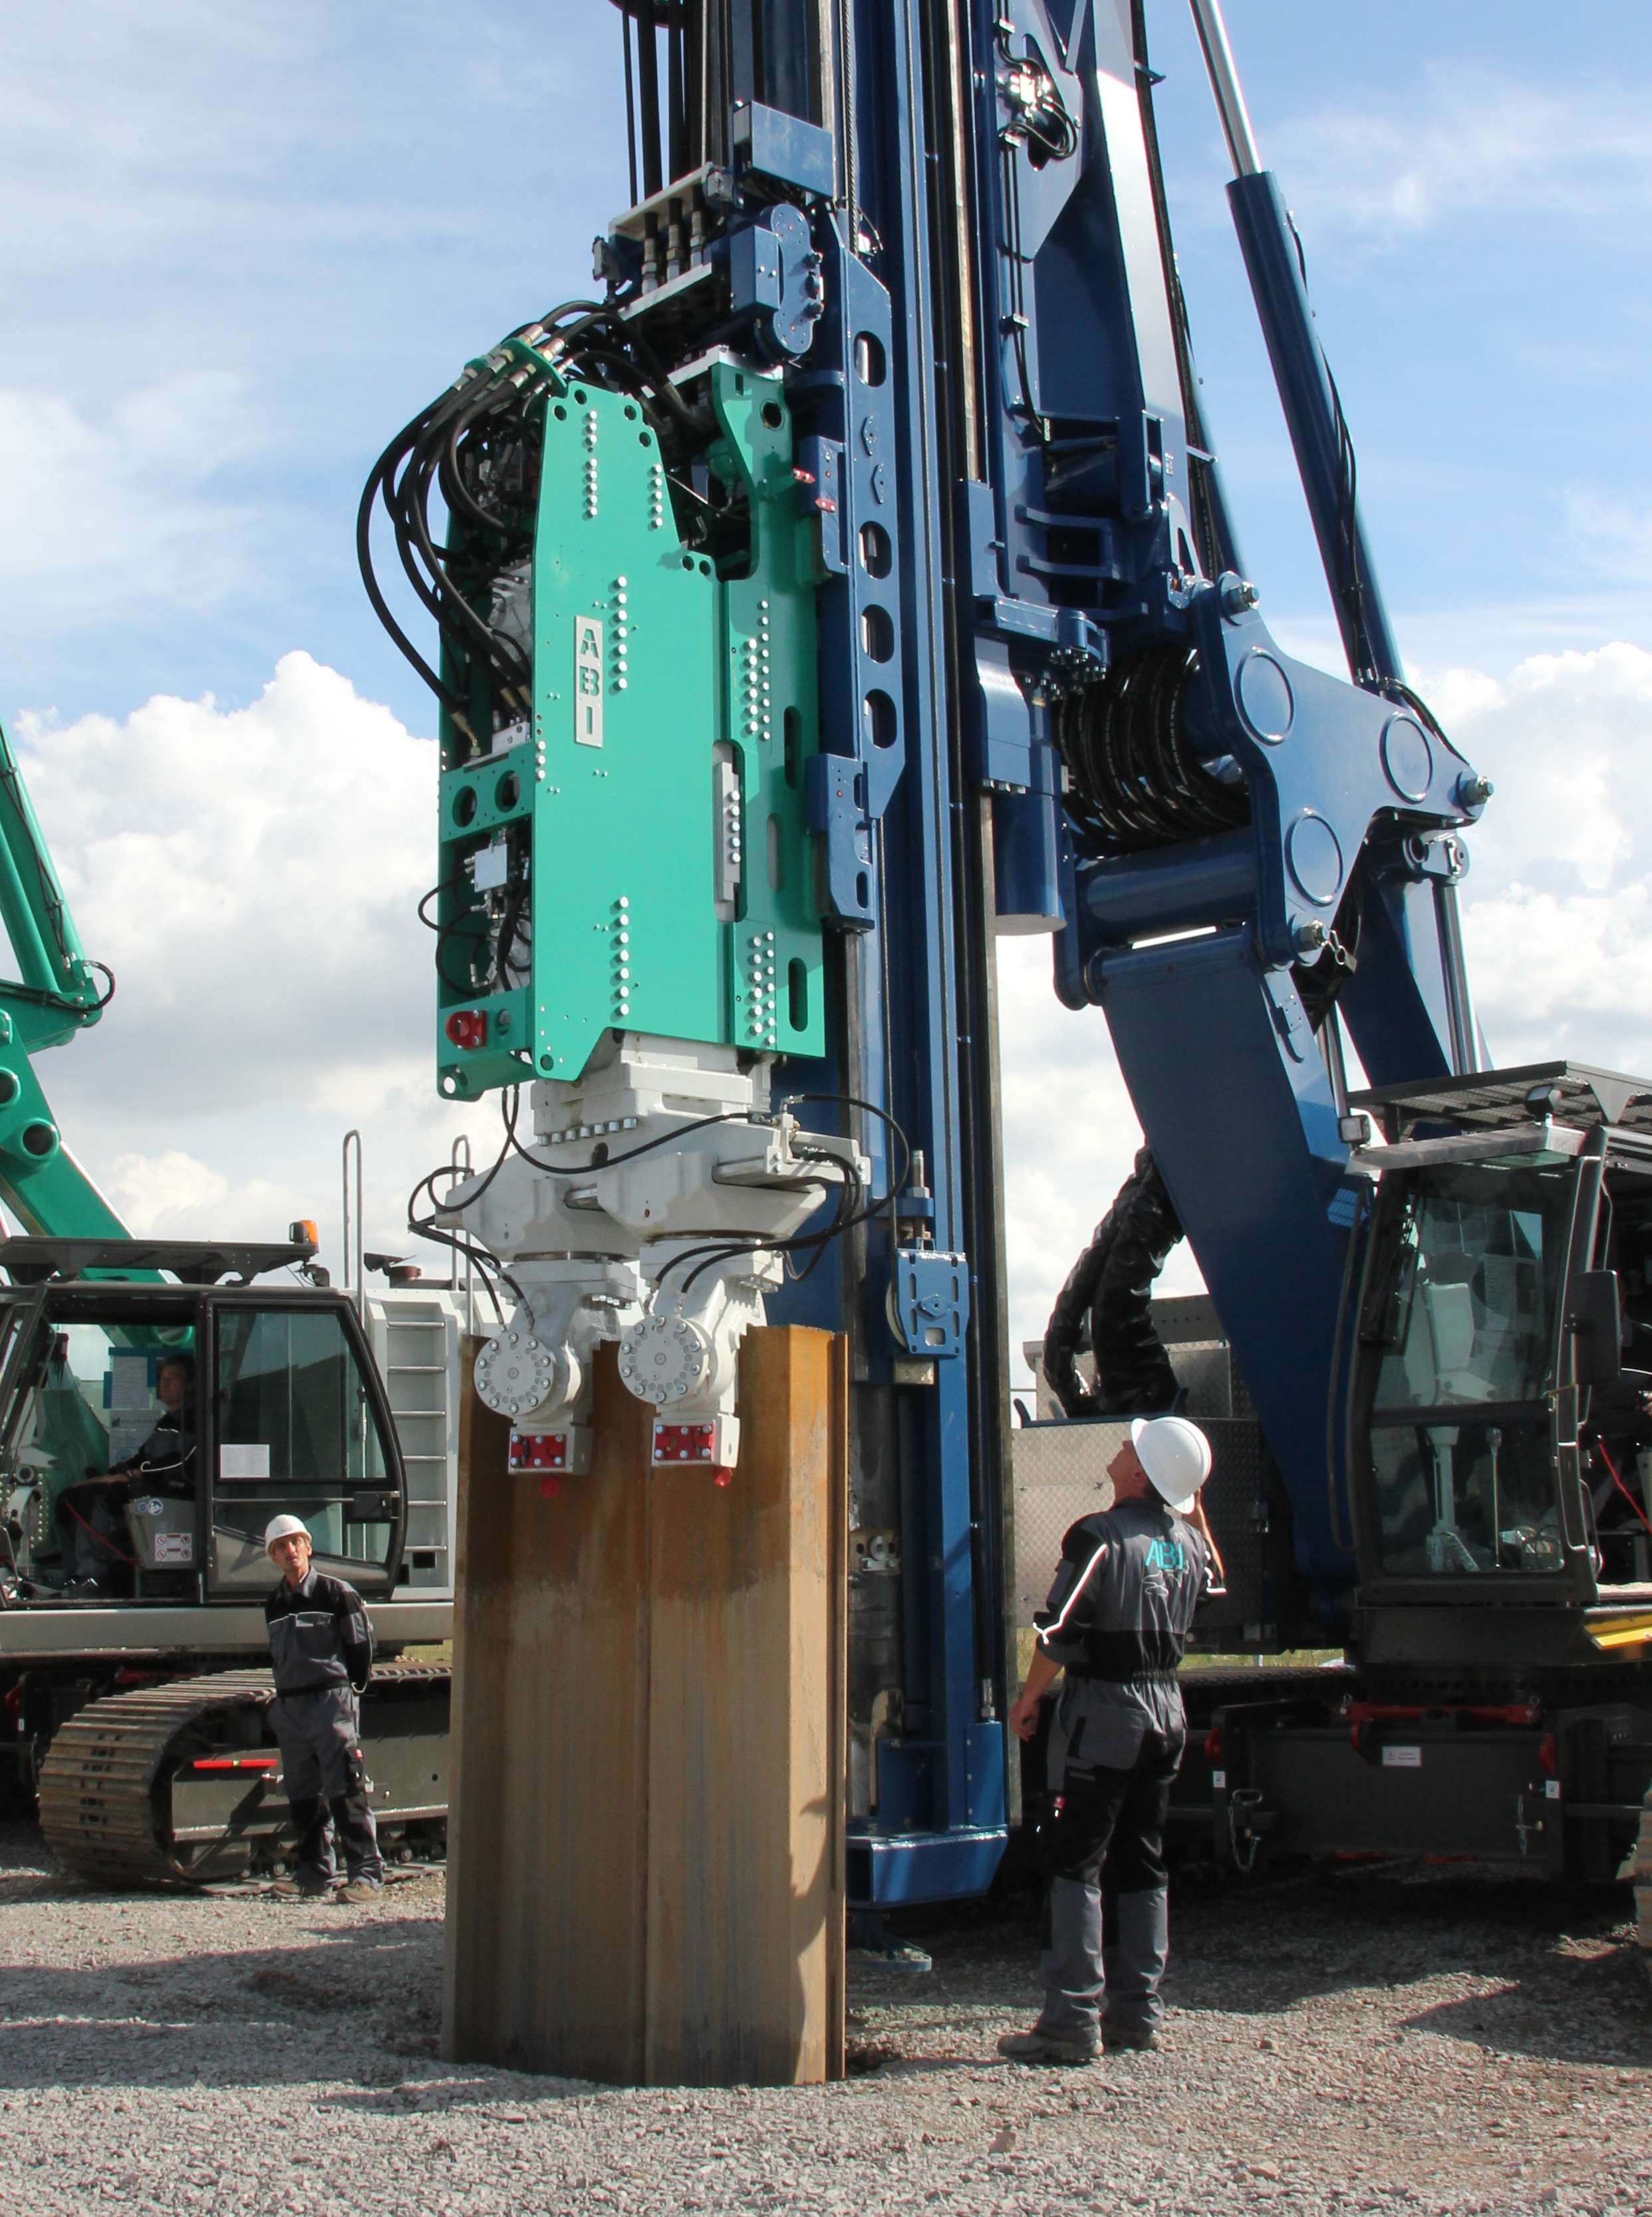 Piling with Vibration – Specs for our latest generation of vibros